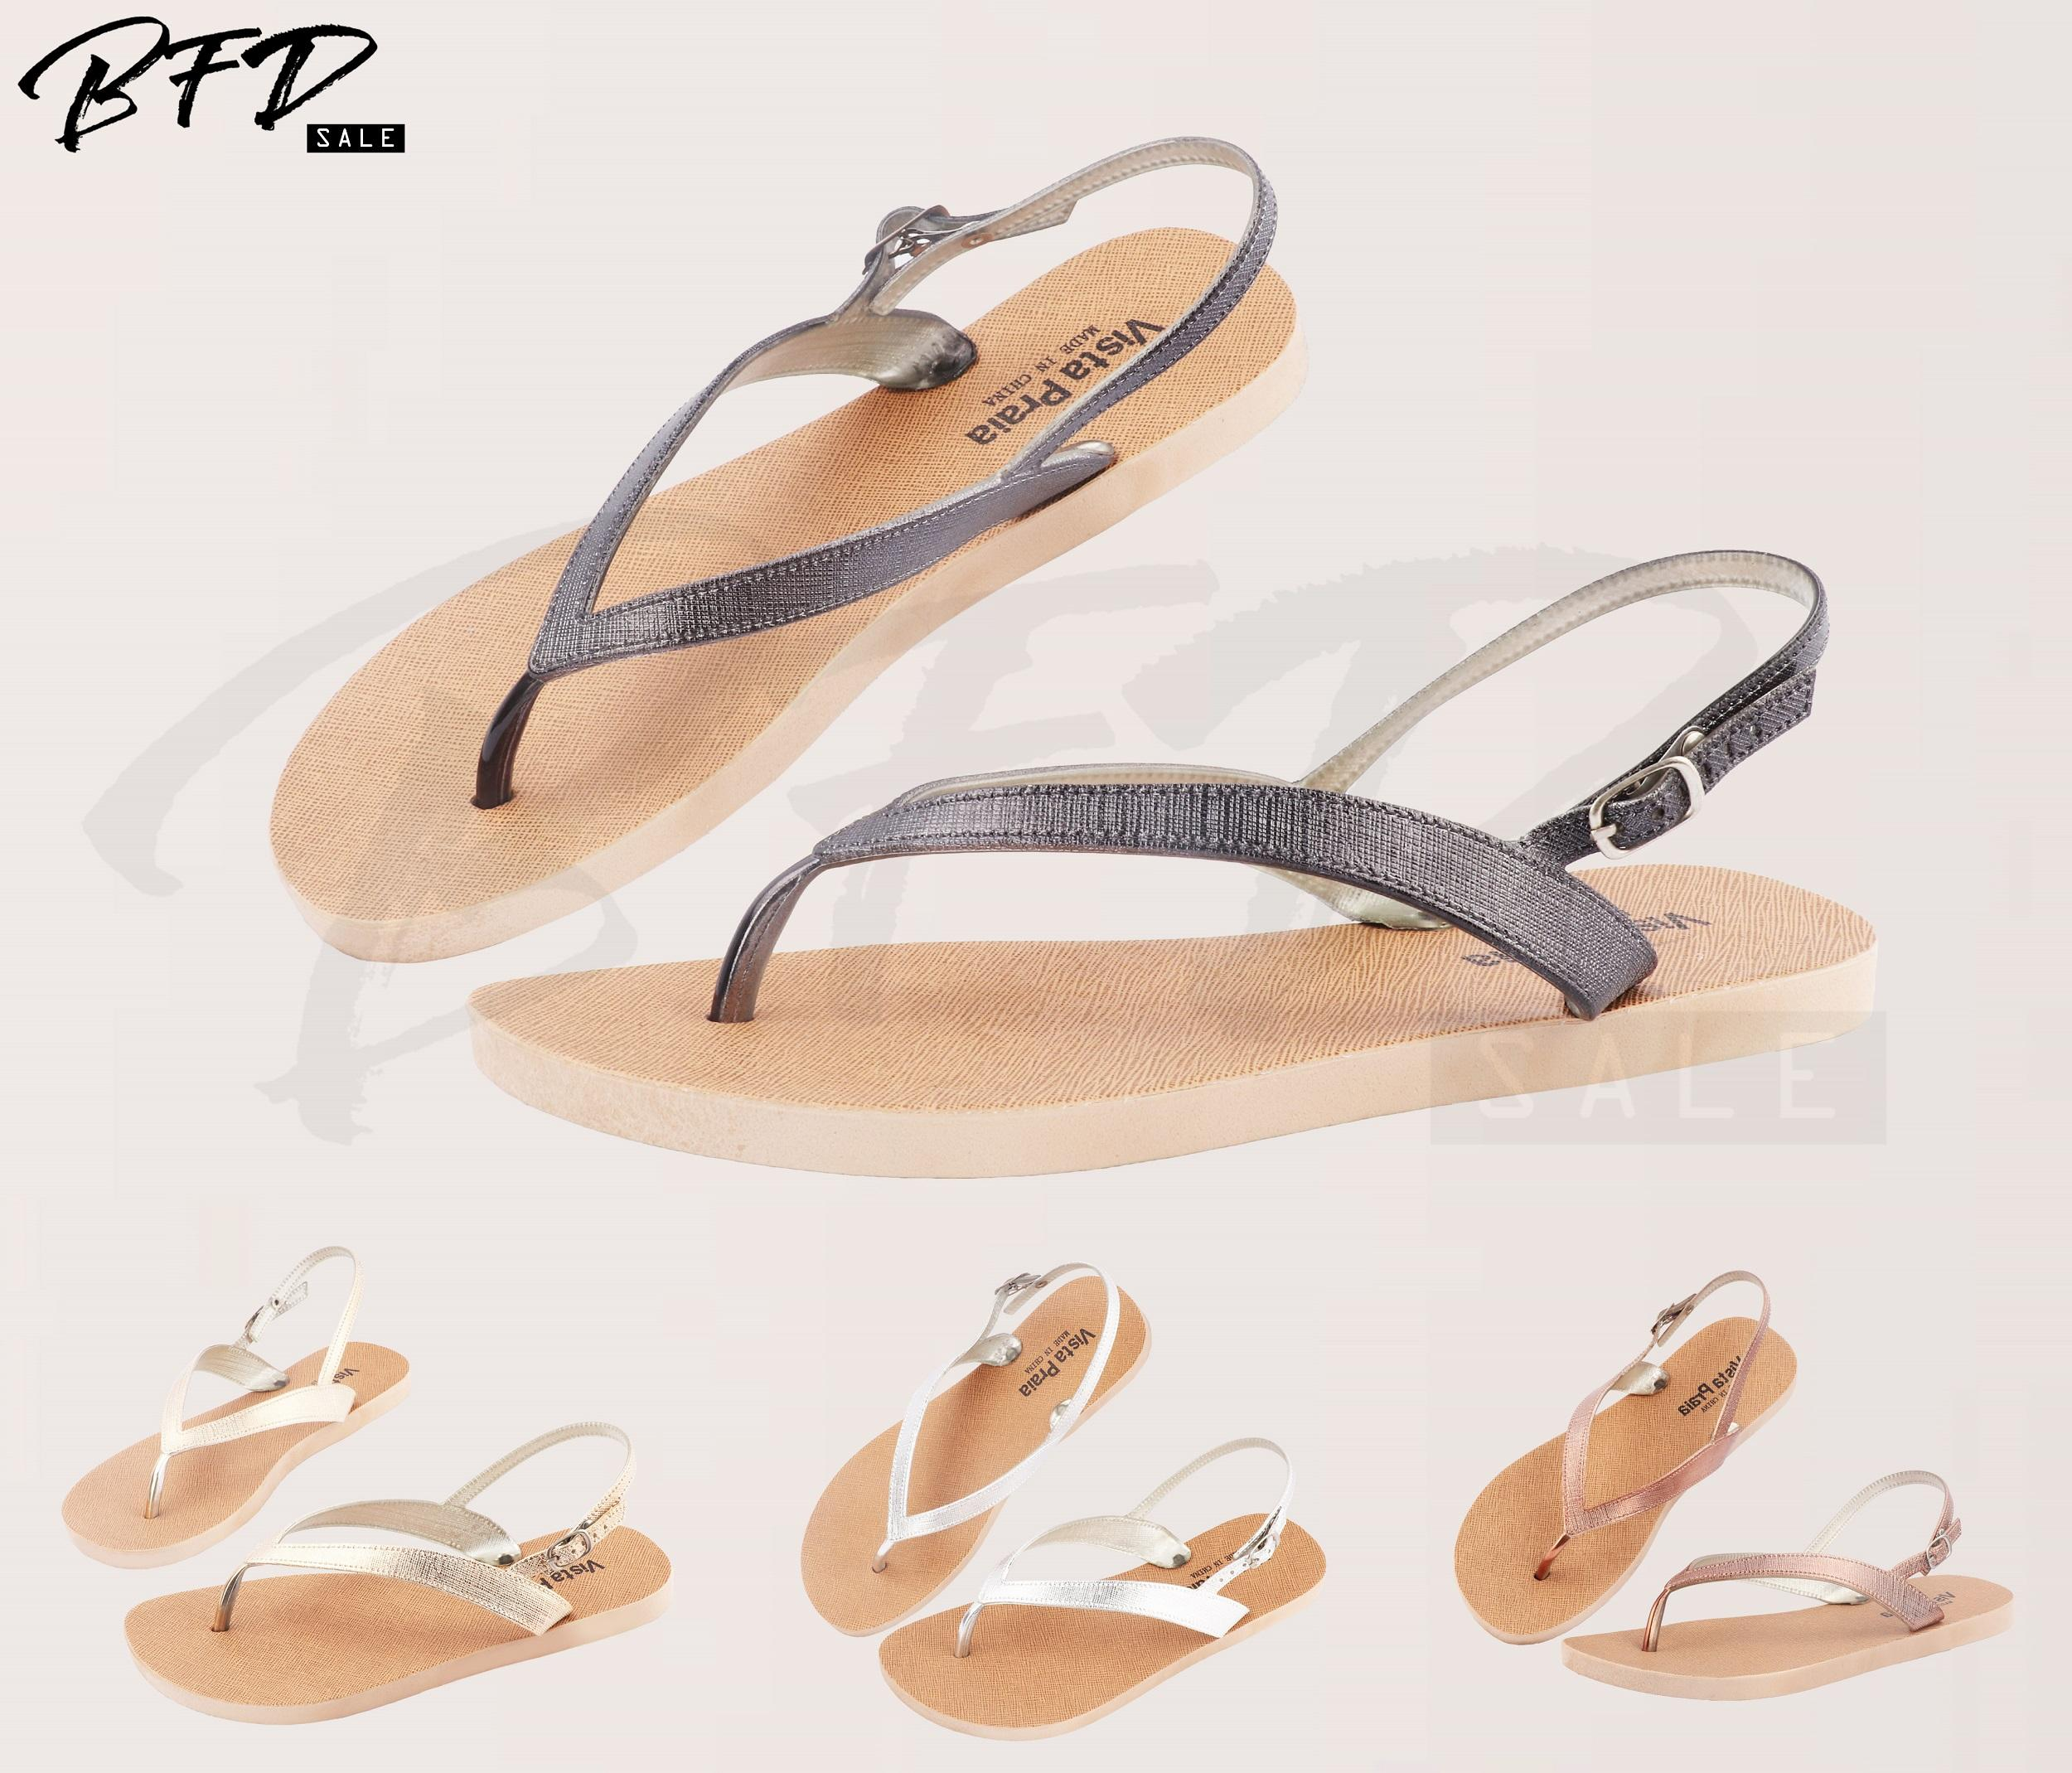 a594a891e Womens Sandals for sale - Ladies Sandals online brands